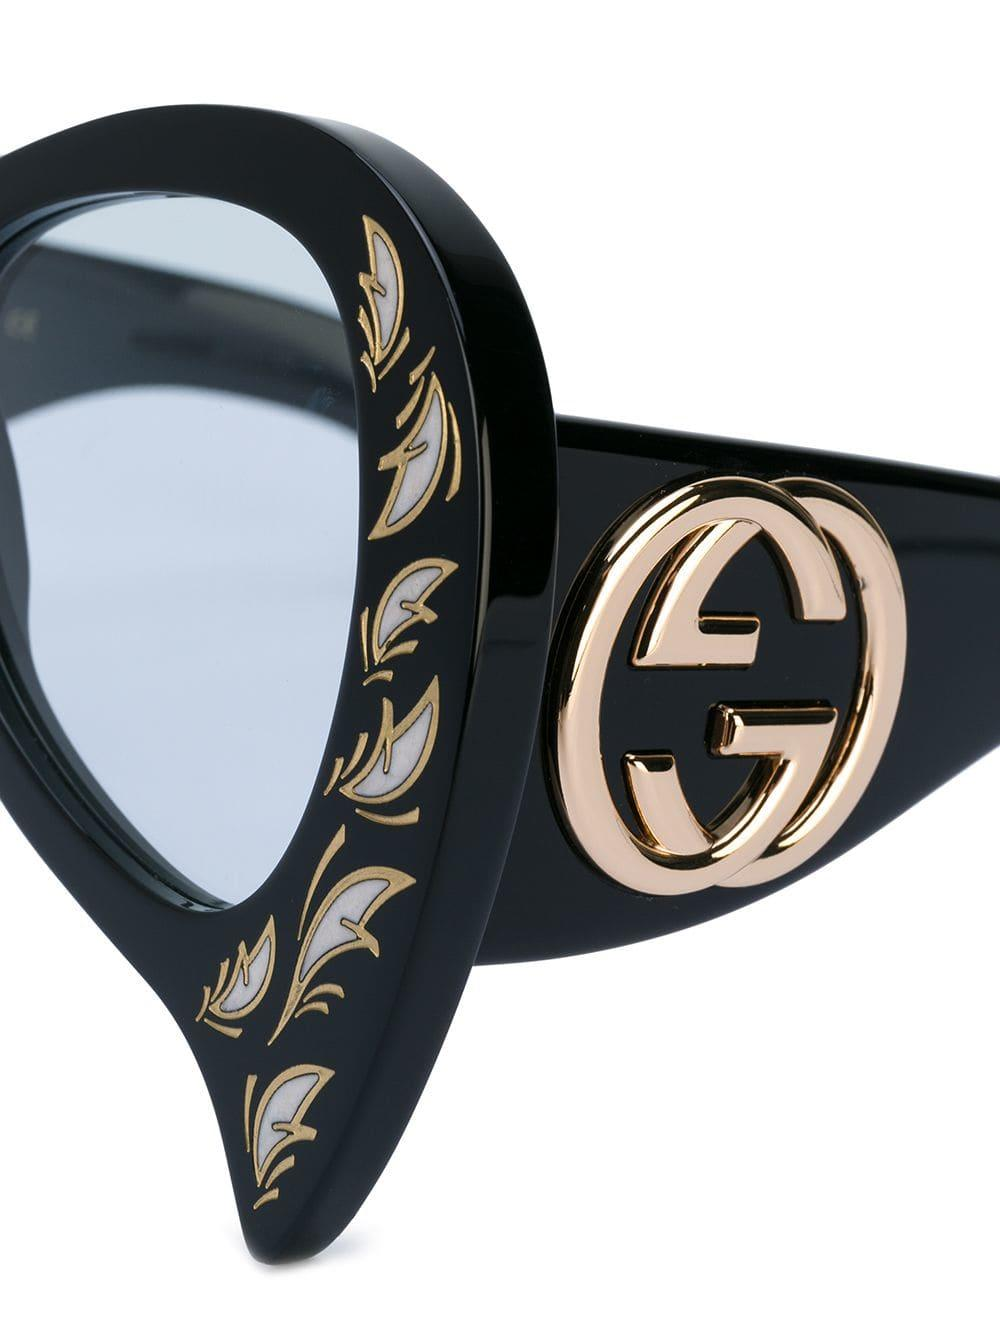 7f45acb55d Lyst - Gucci Inverted Cat Eye Glasses in Black